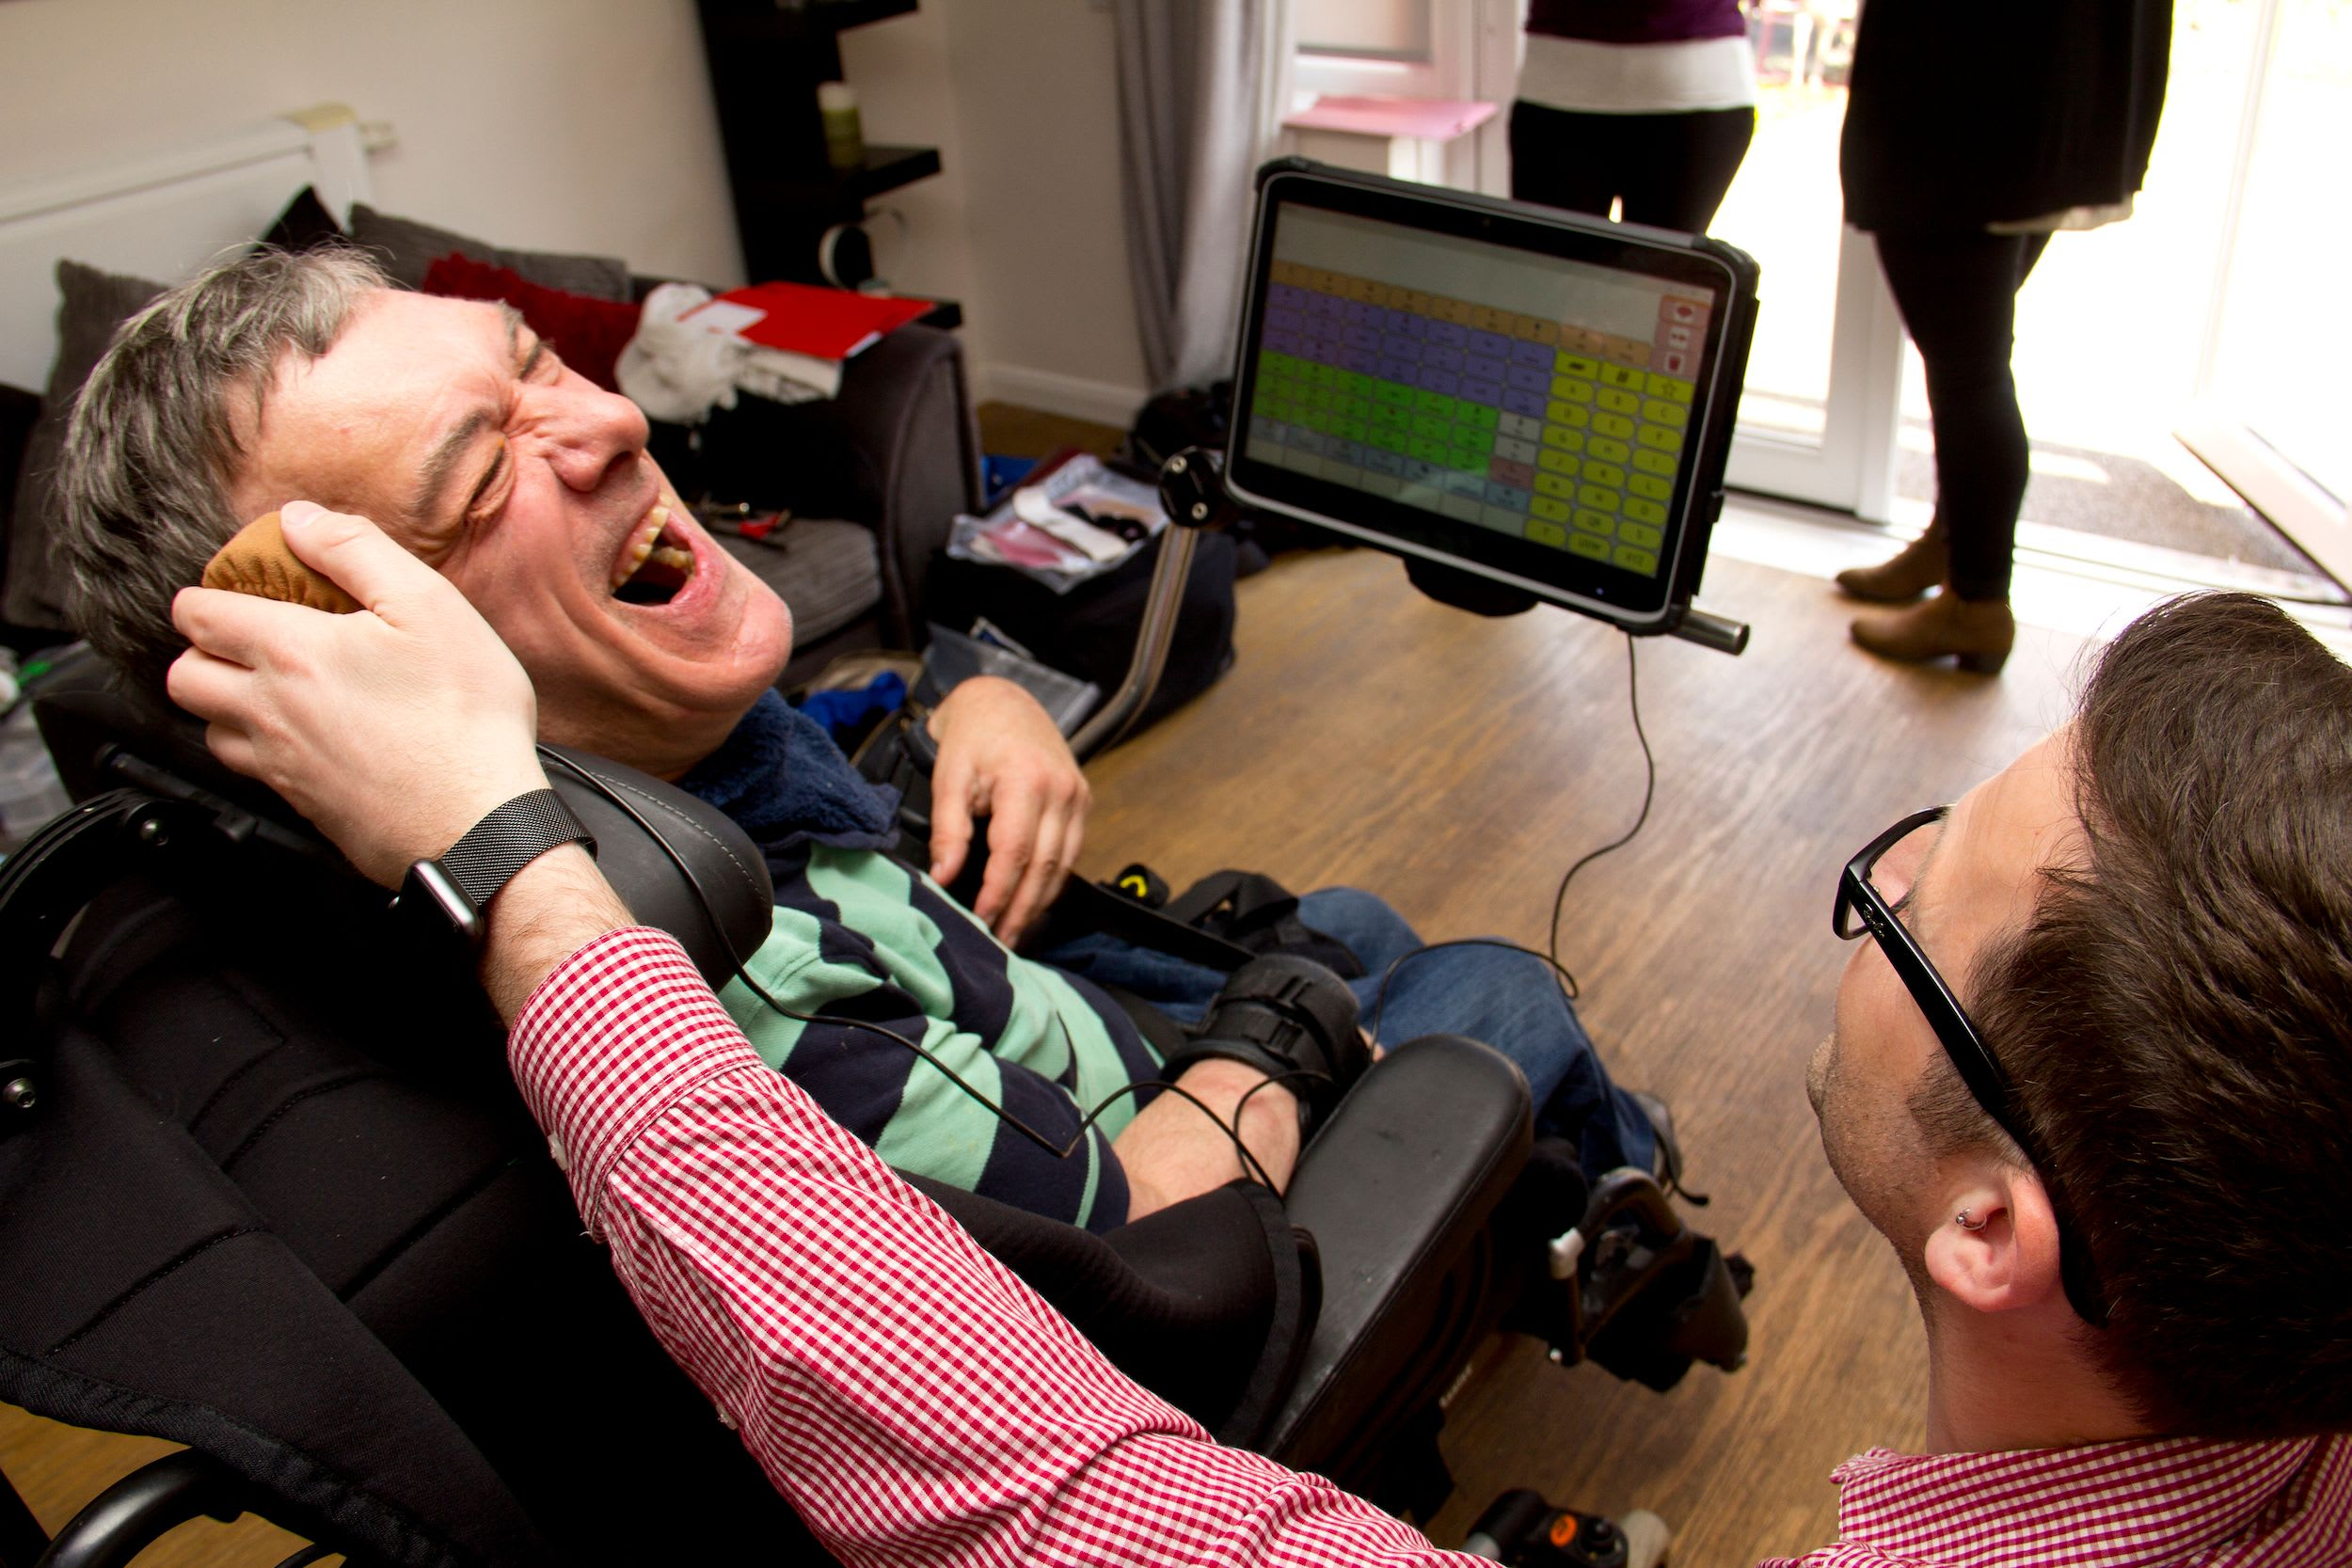 Client getting fitted with a new AAC device